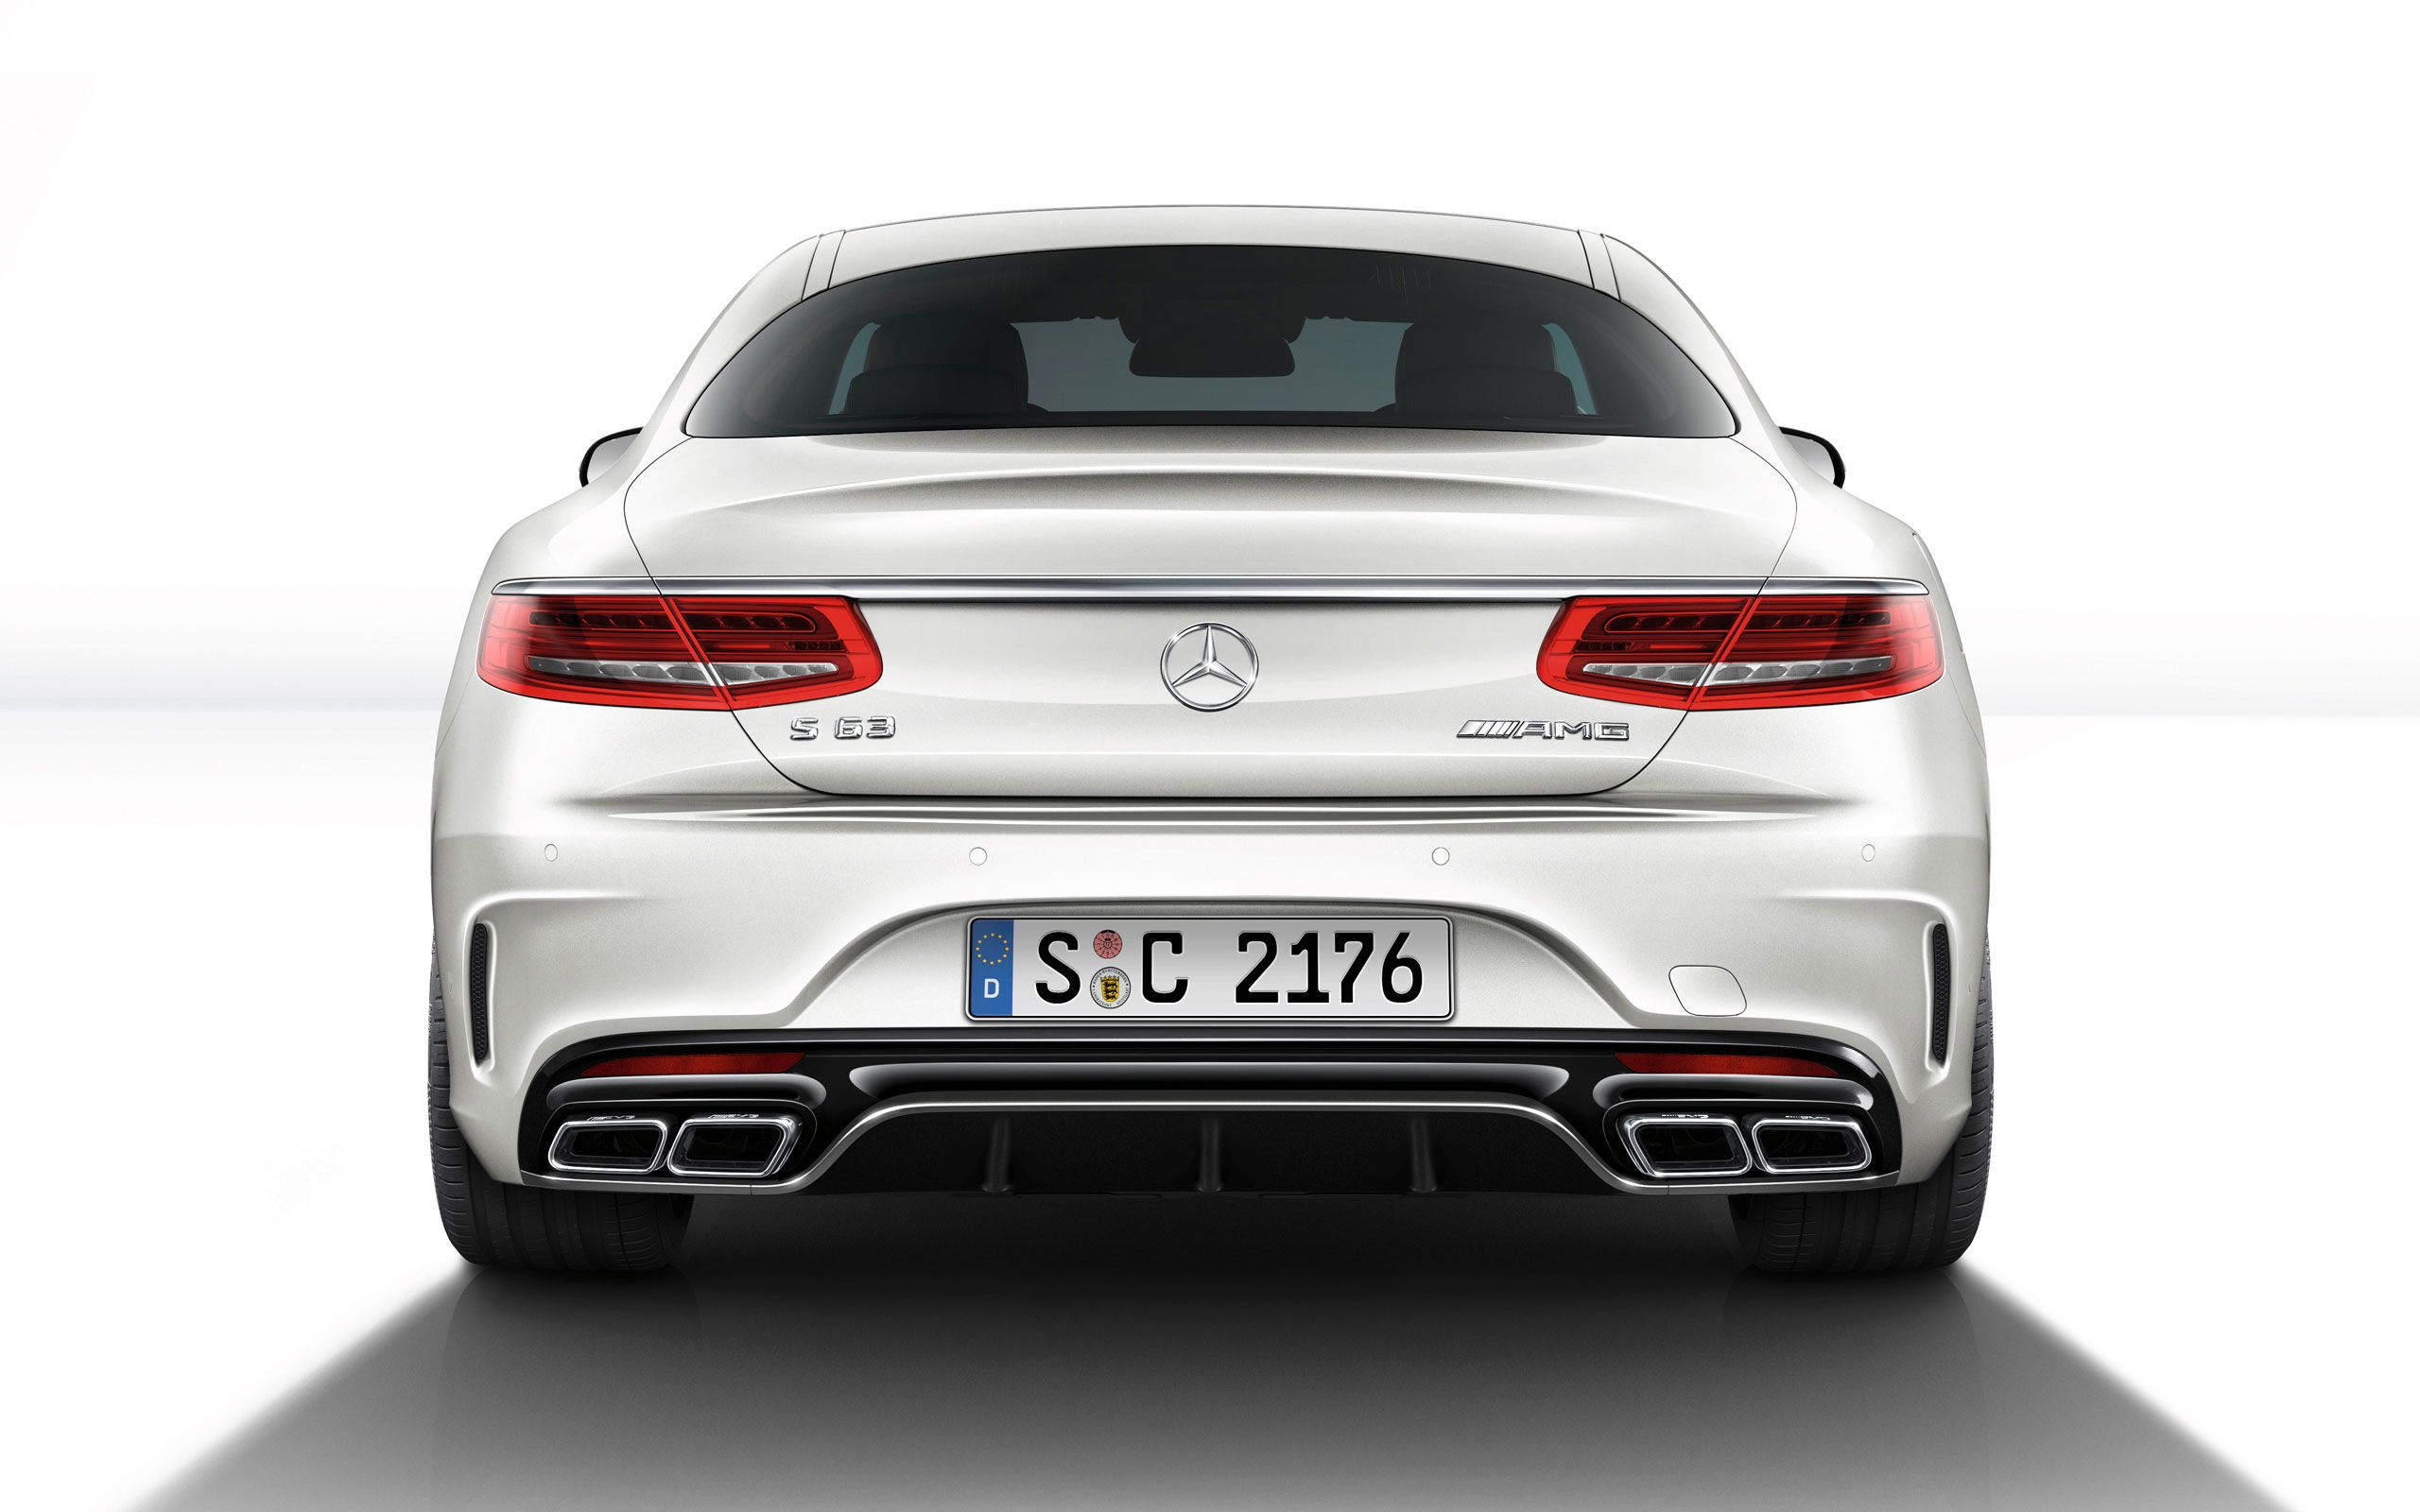 2015 white mercedes benz s63 amg coupe hd